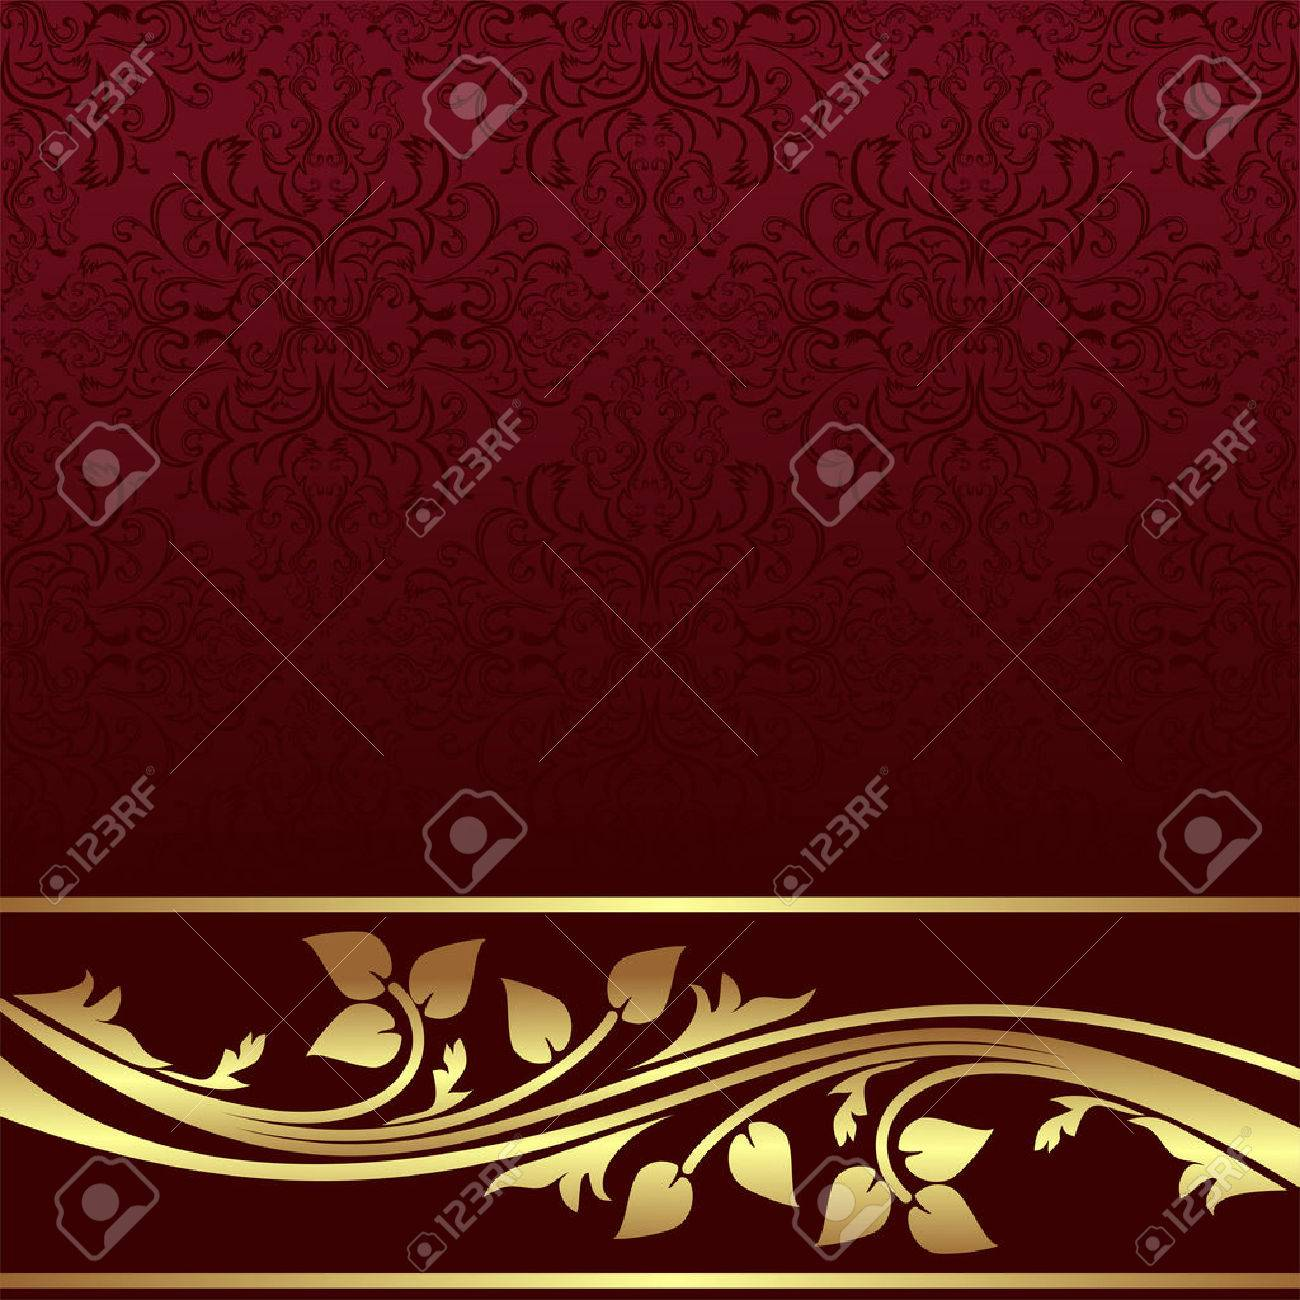 Luxury red ornamental Background with golden floral Border. - 31294349